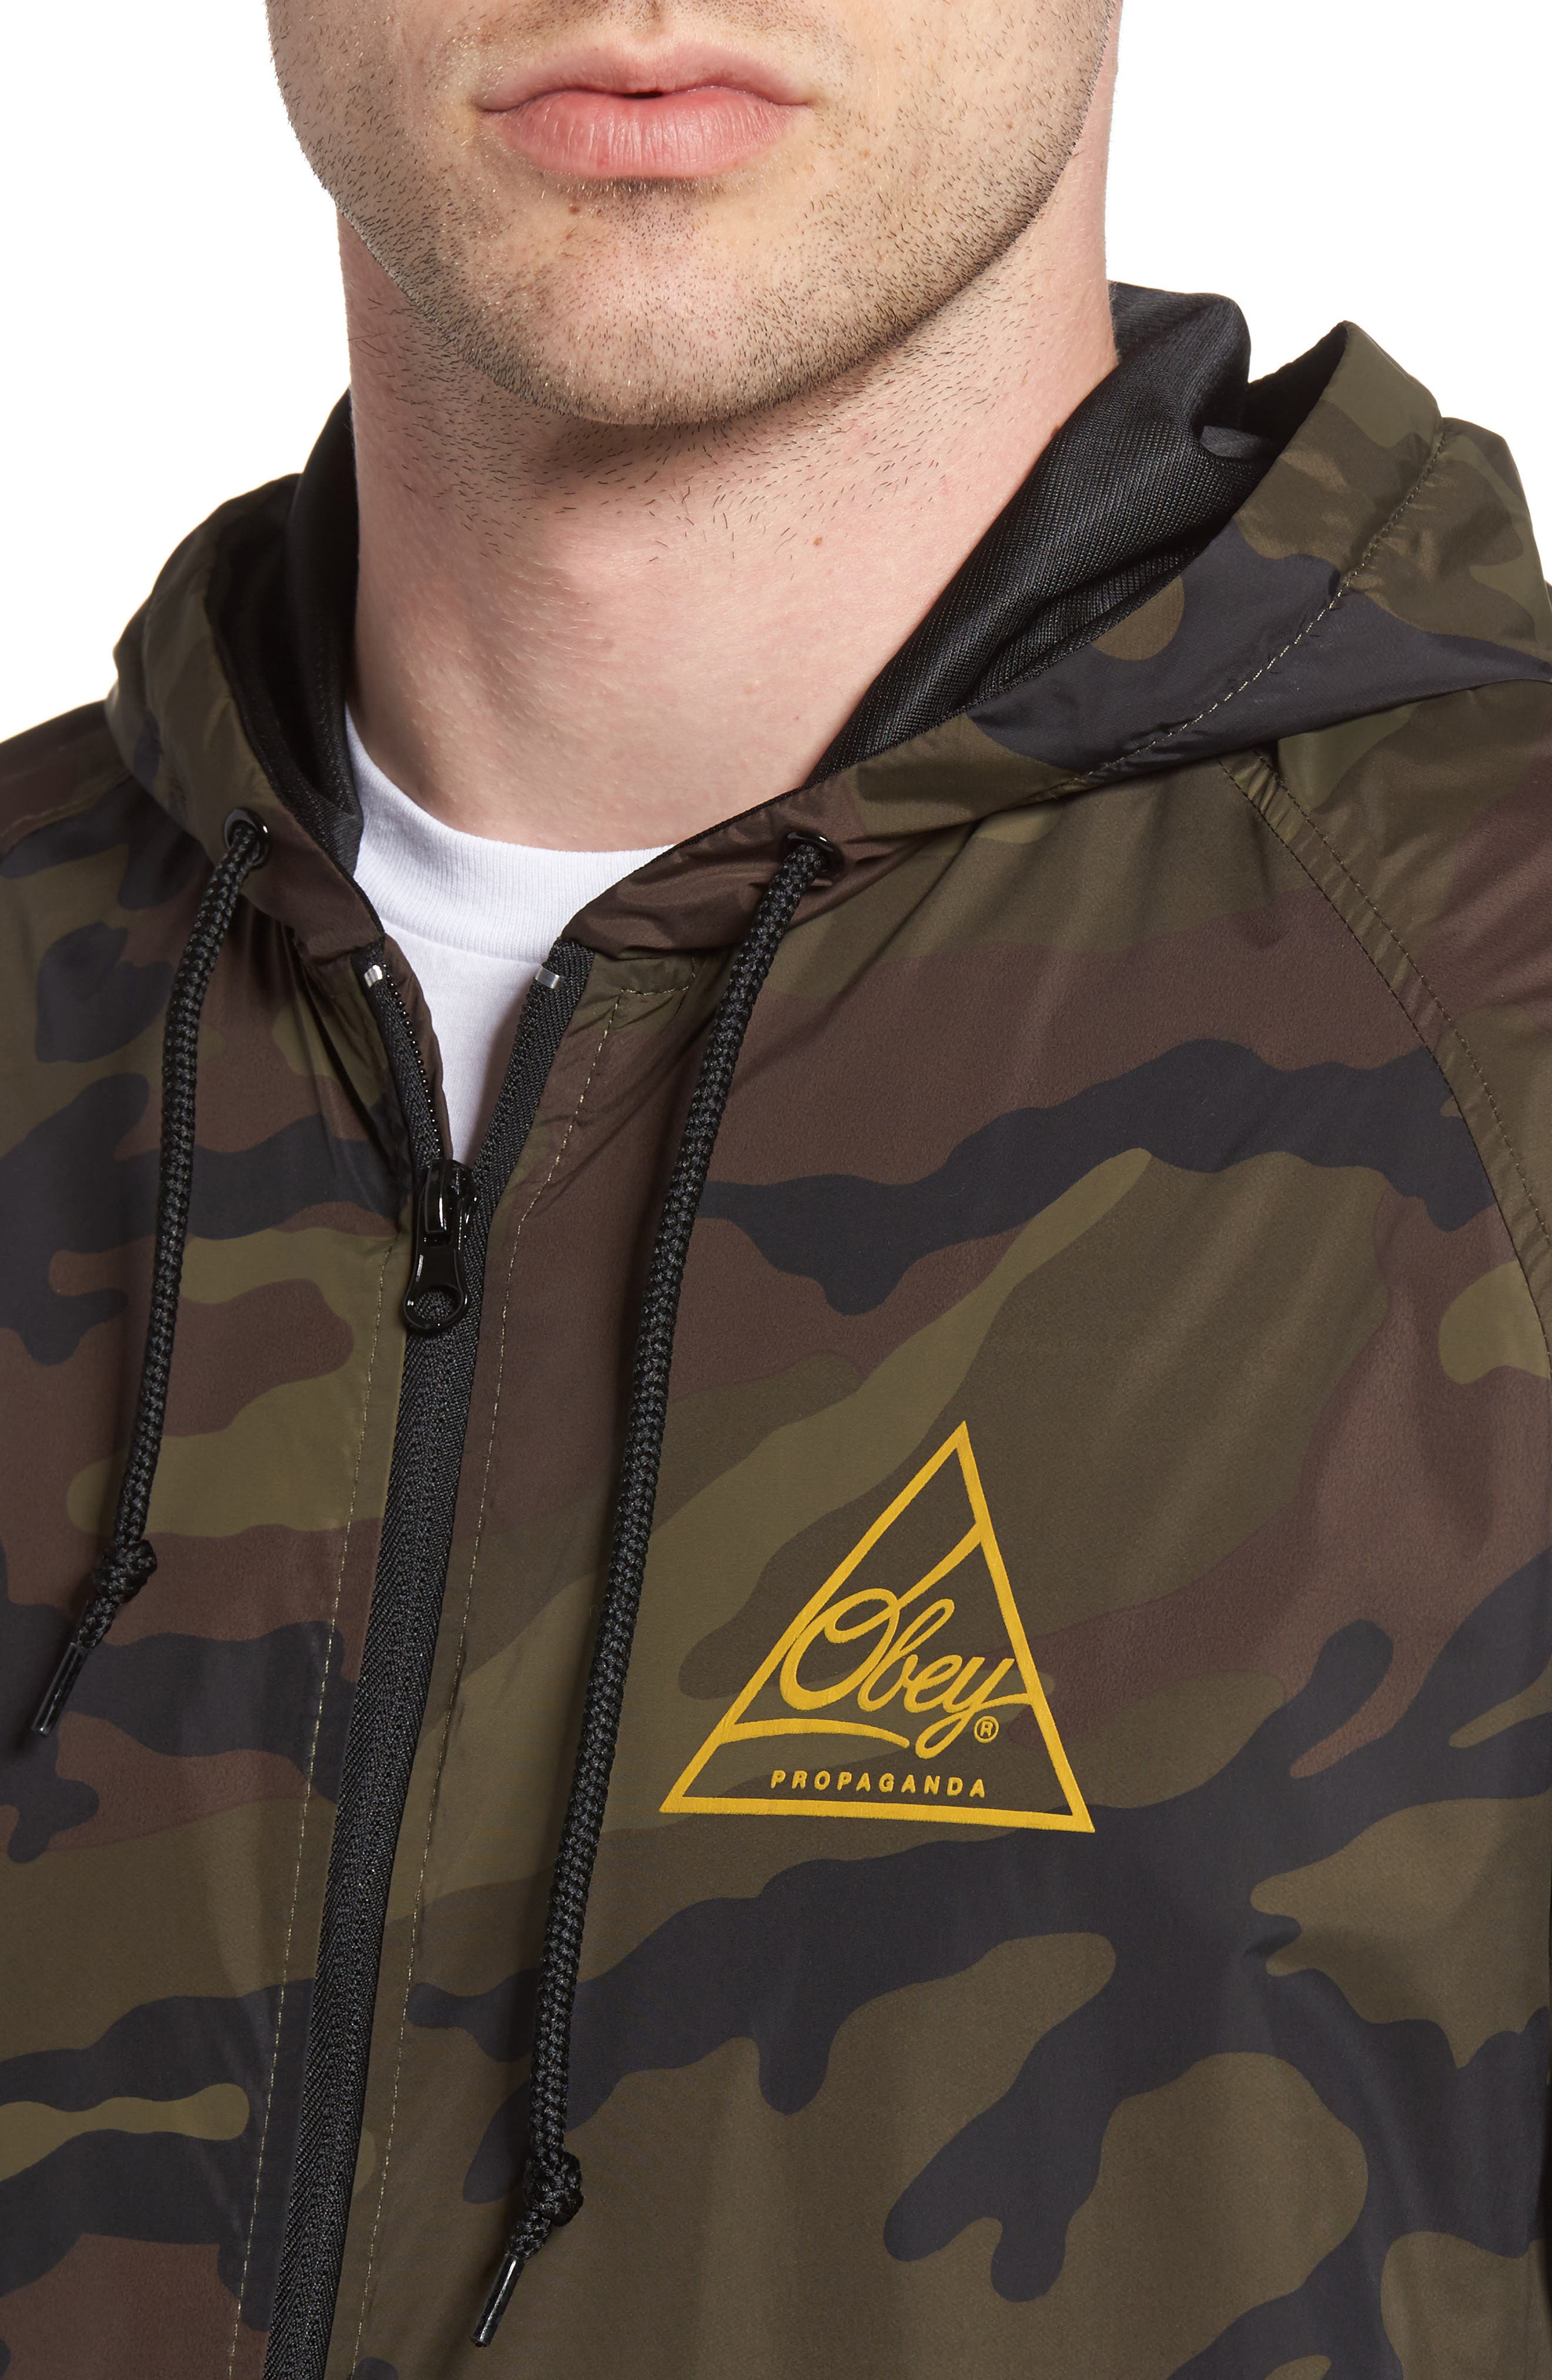 Next Round 2 Hooded Coach Jacket,                             Alternate thumbnail 5, color,                             305